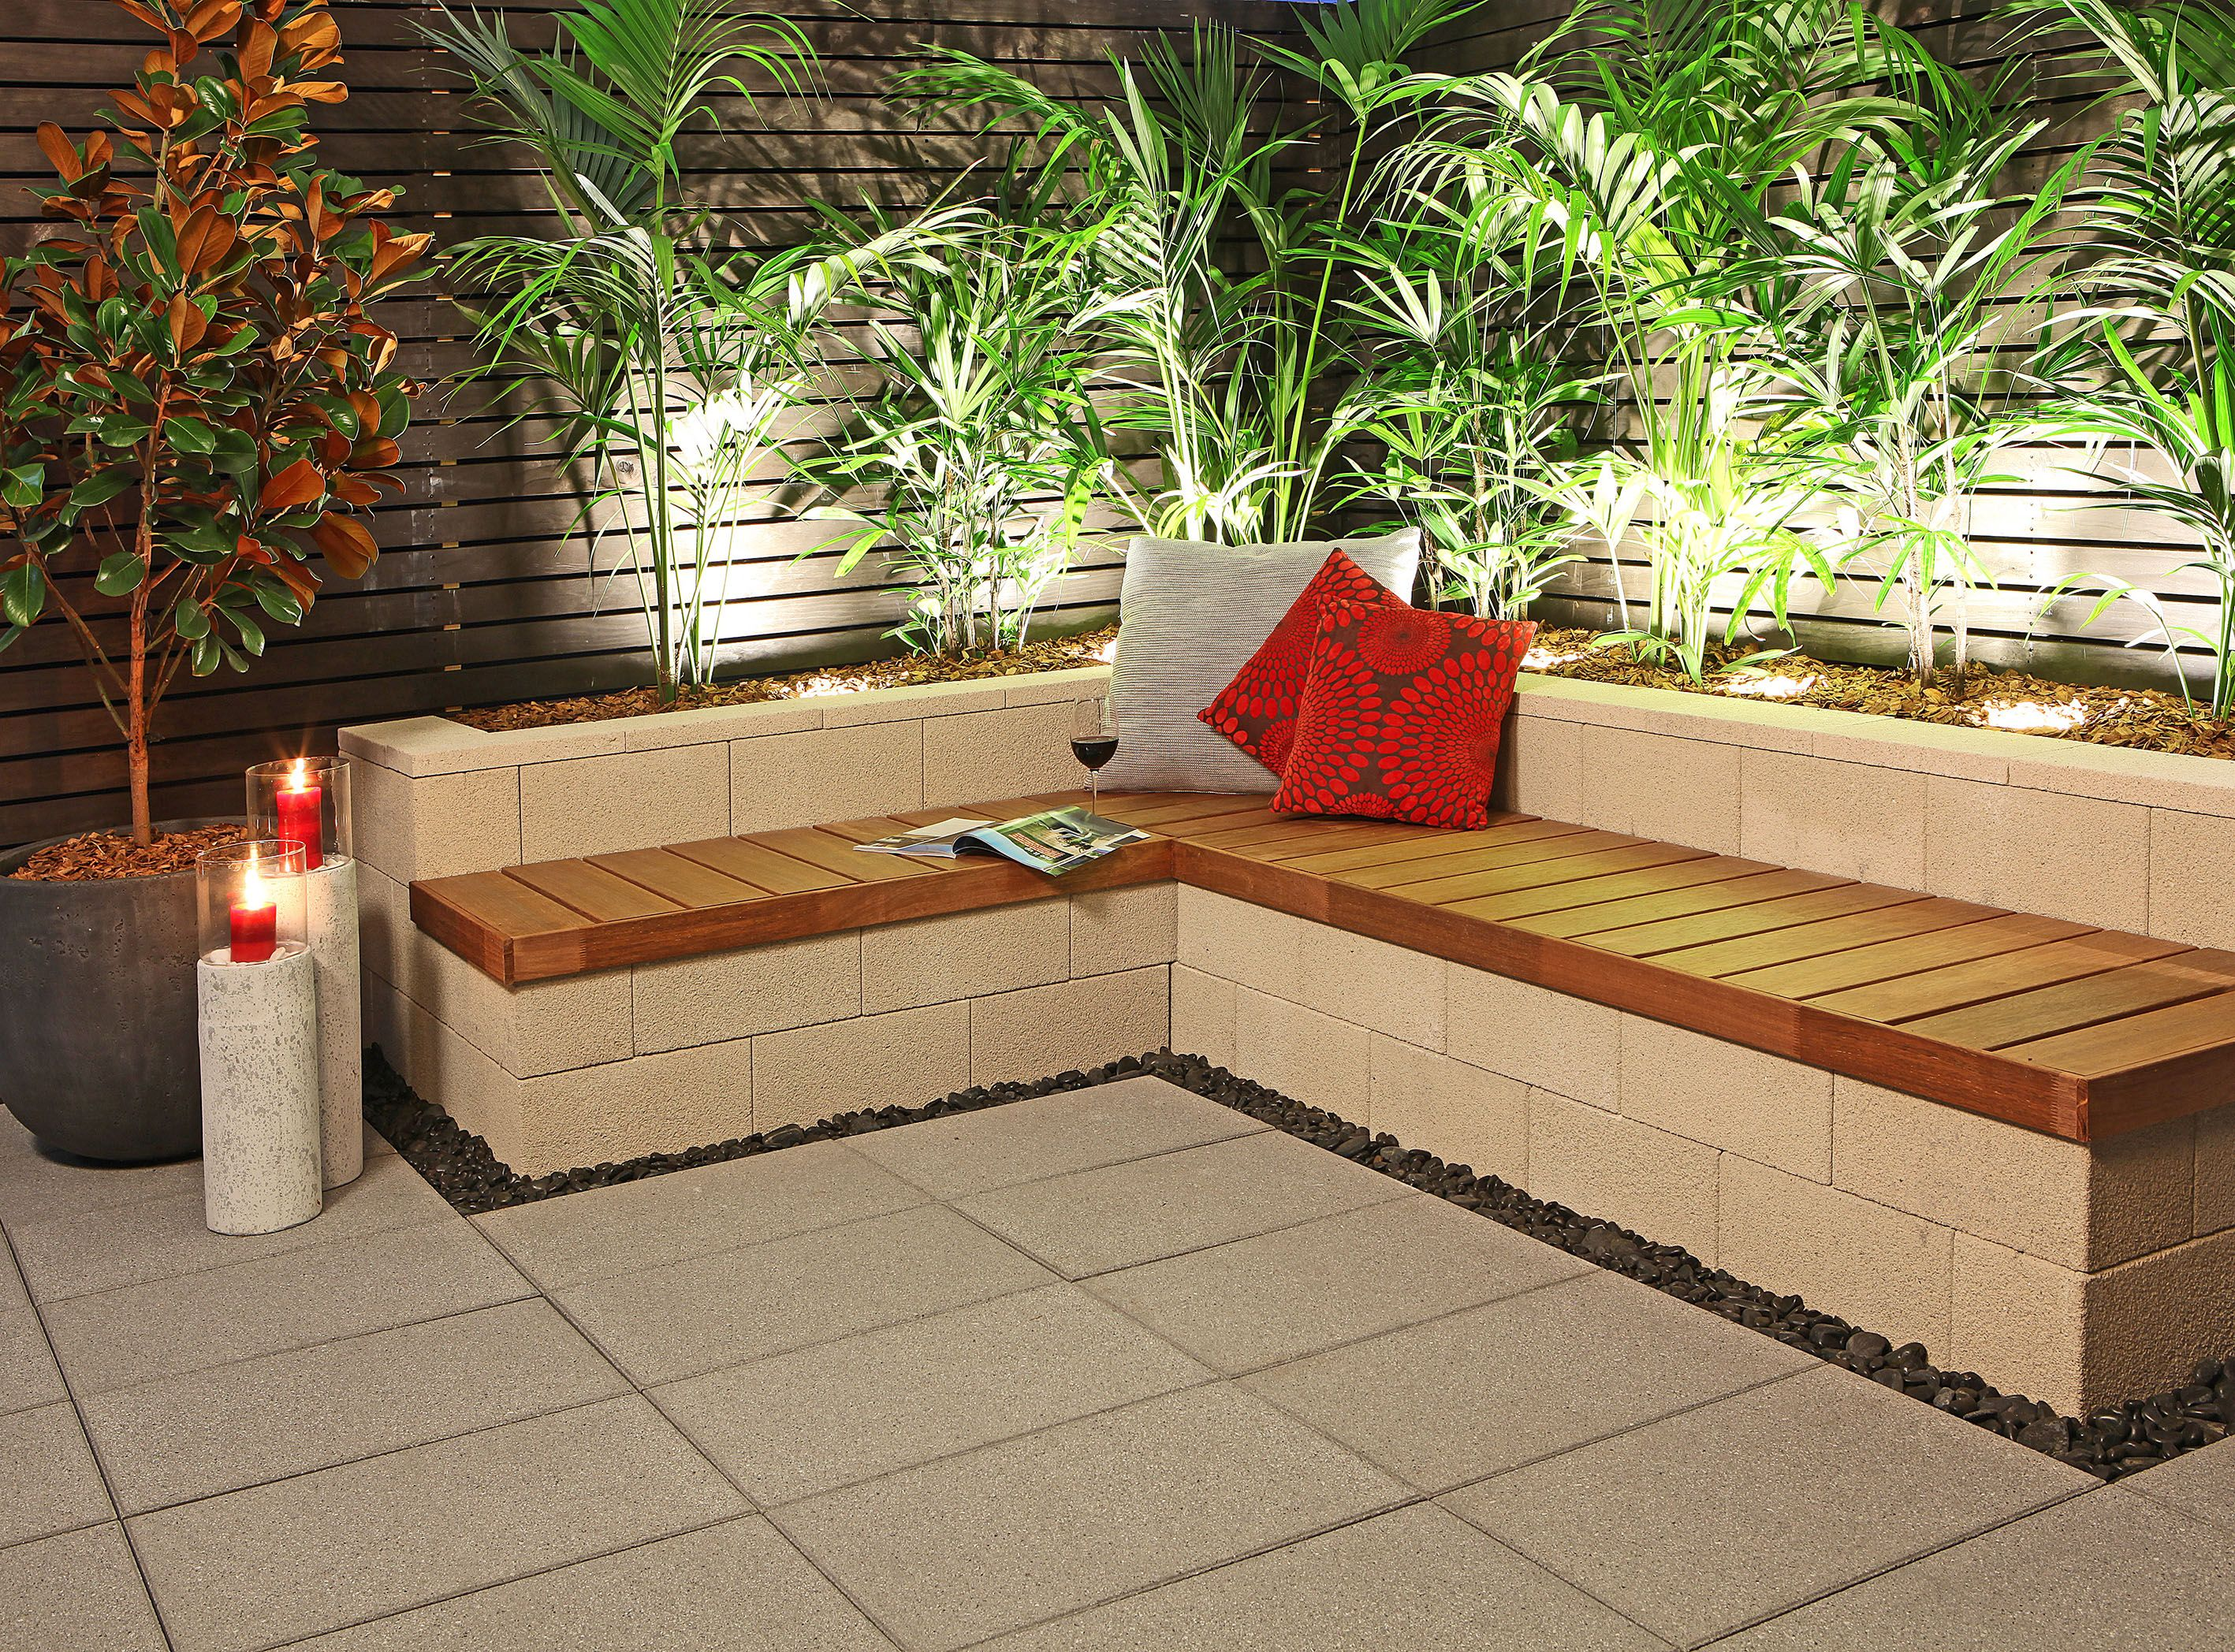 This Outdoor Room Is A Stunning Feature And Serves As